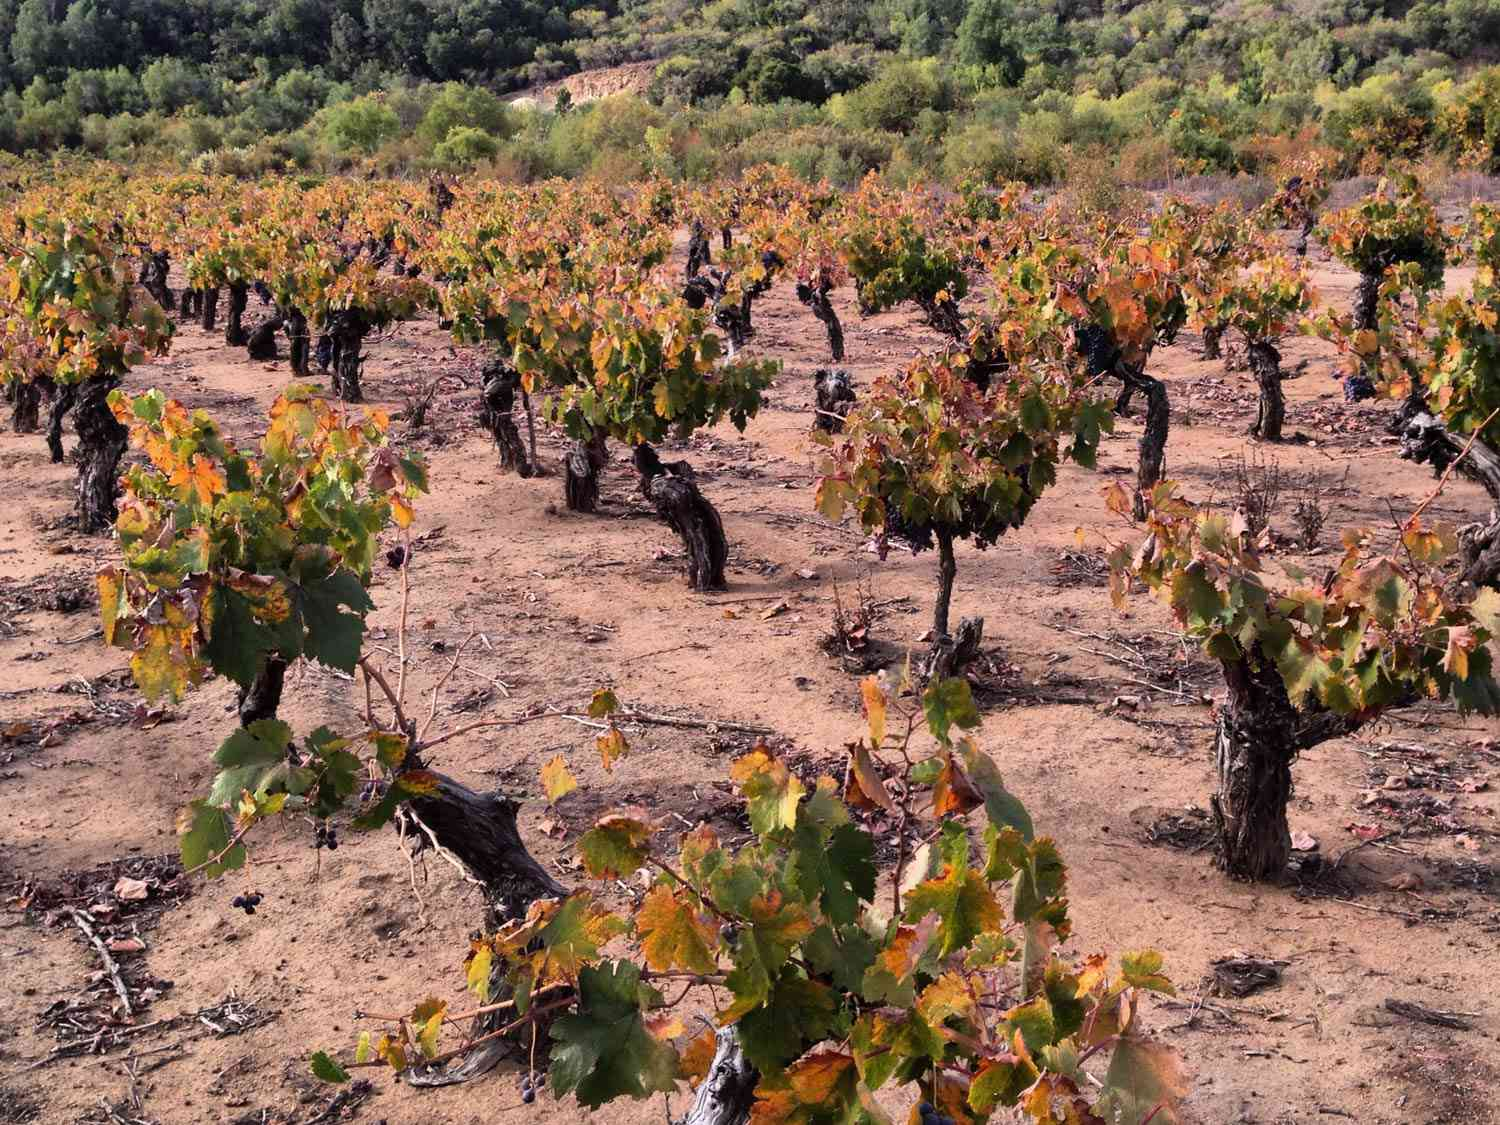 20150625-chilean-wine-maule-old-vines-pais-jake-pippin.jpg